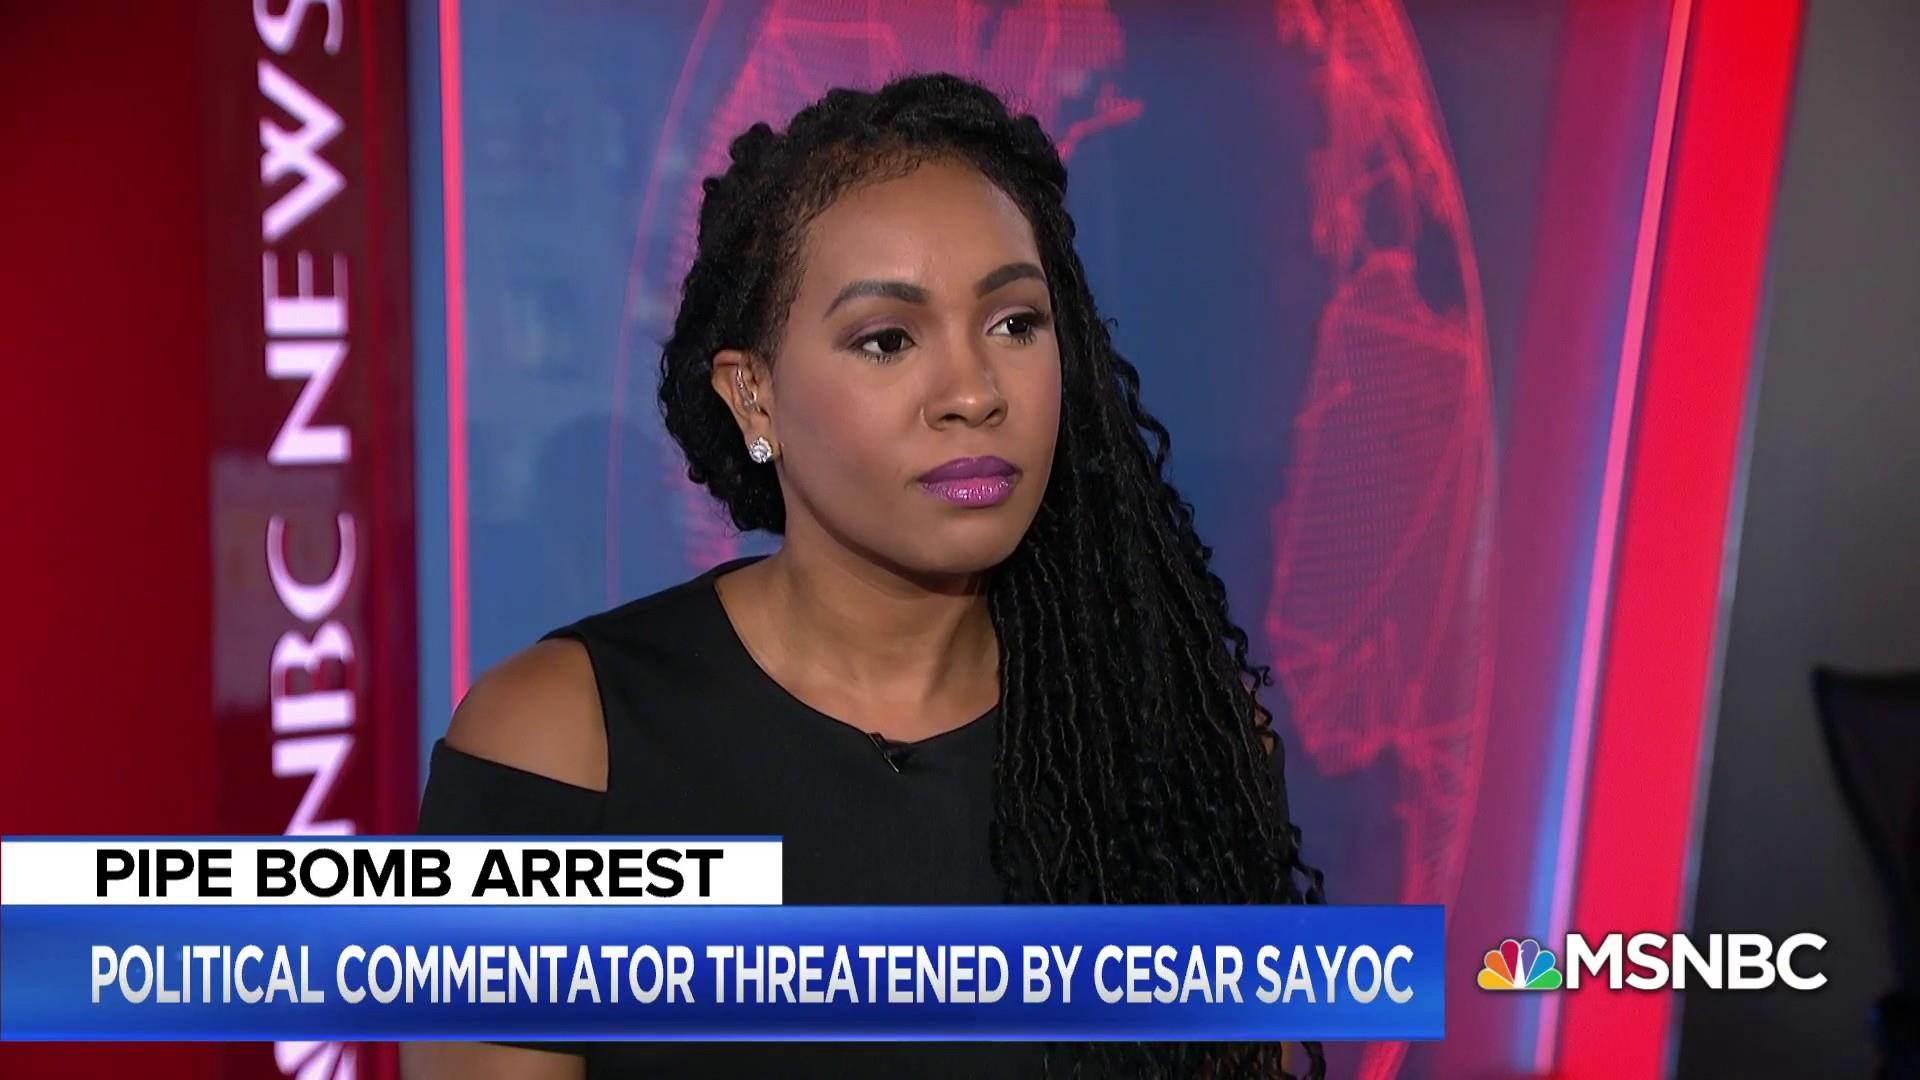 Political commentator: I was threatened by pipe bomb suspect